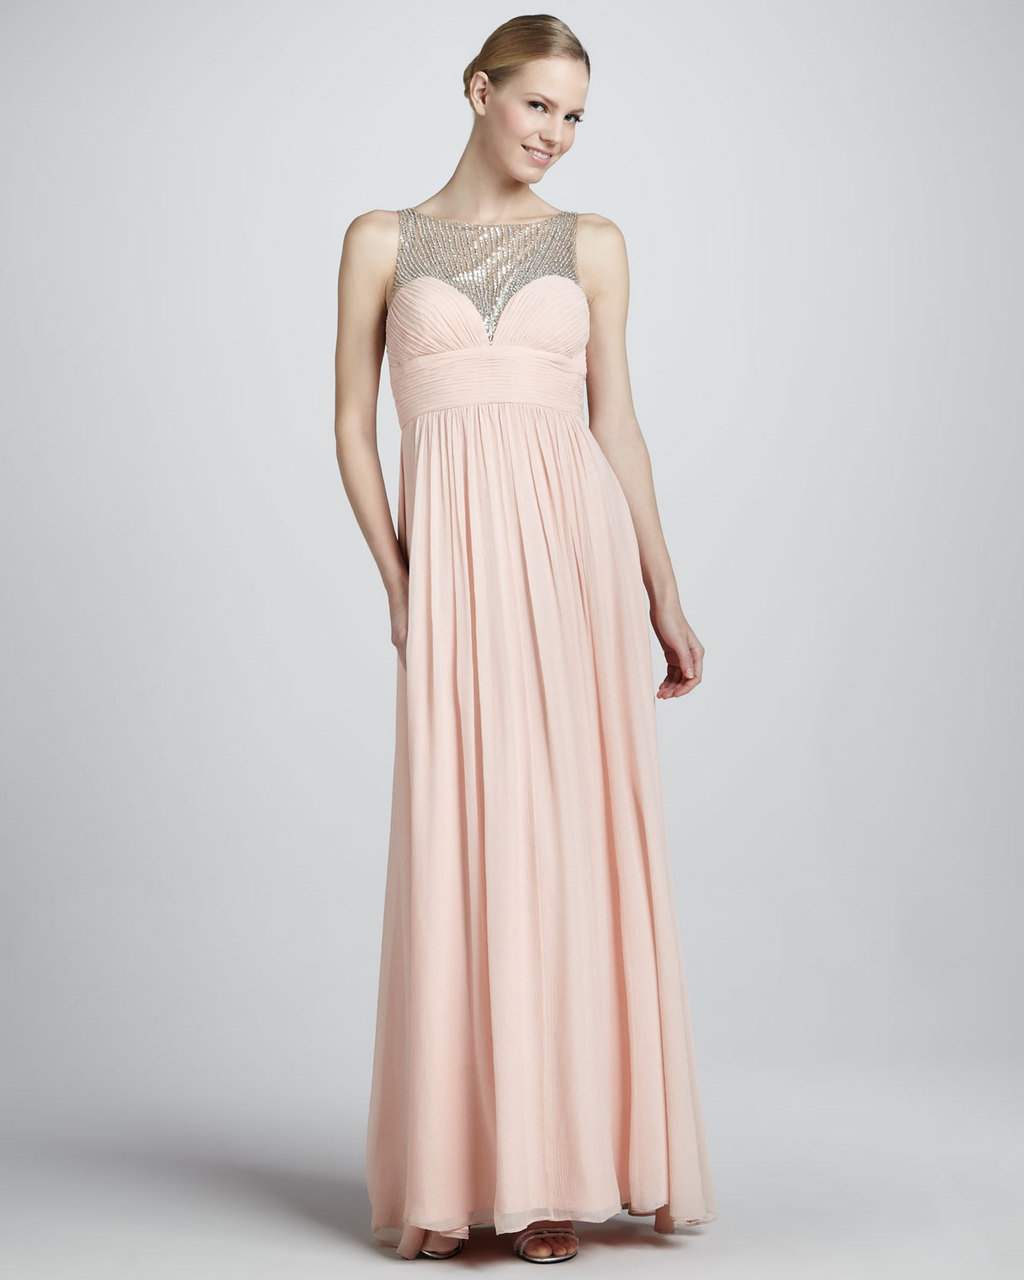 Blush-pink-chiffon-gown-for-bridesmaids-or-mob.full